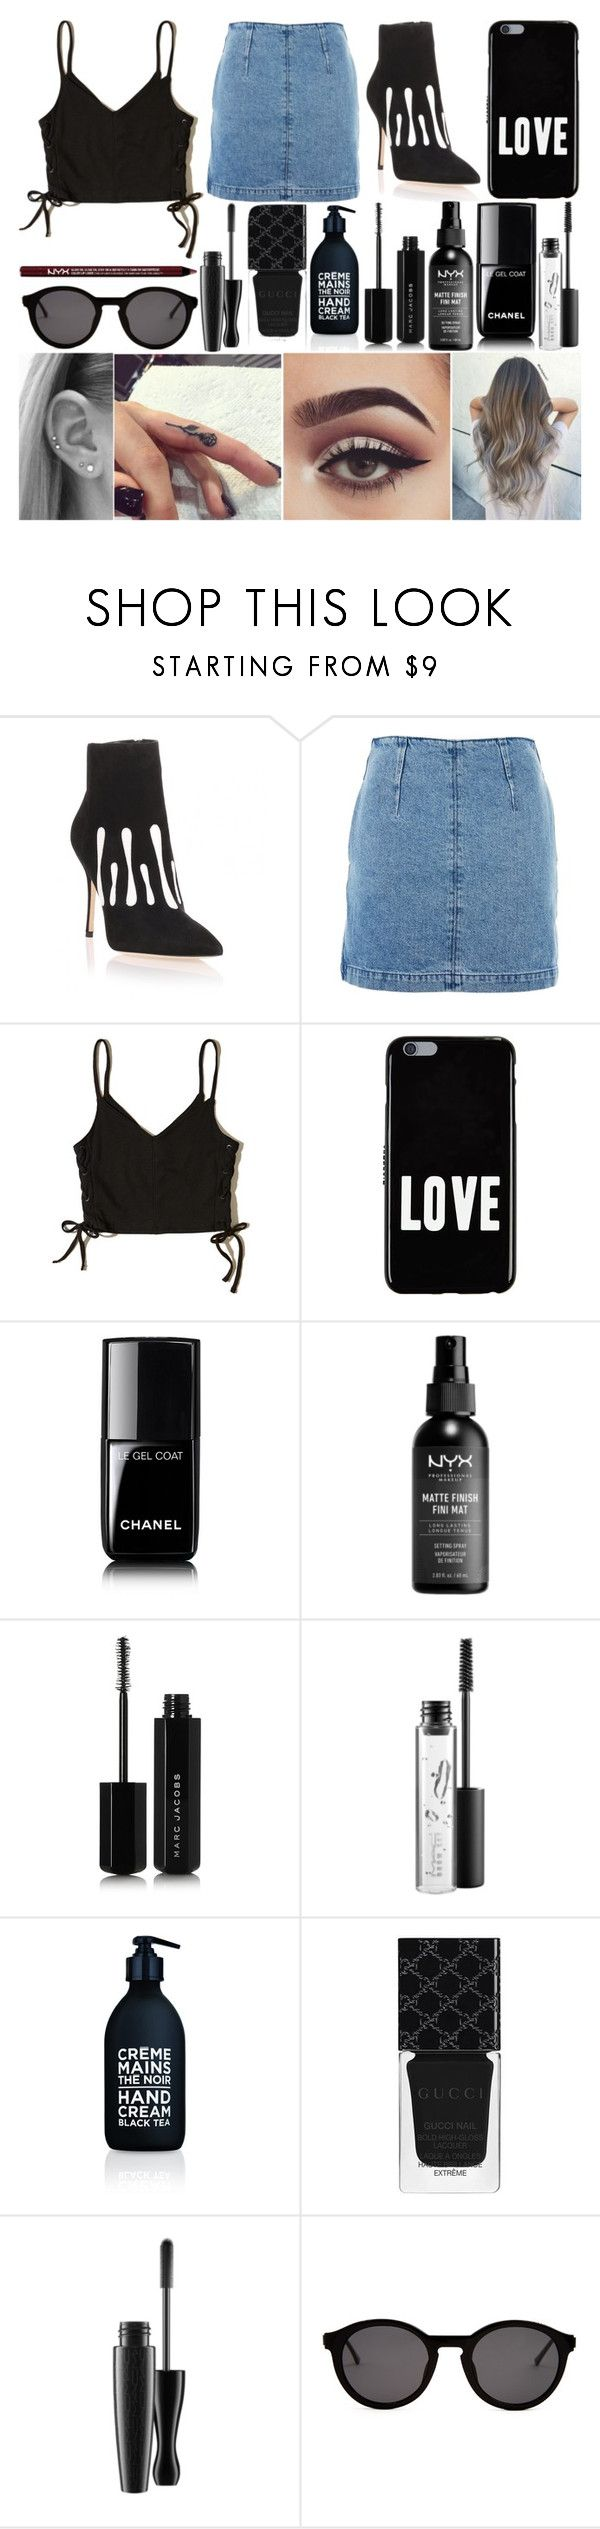 """Party"" by susanna-trad ❤ liked on Polyvore featuring Manolo Blahnik, Topshop, Hollister Co., Givenchy, Chanel, Marc Jacobs, MAC Cosmetics, La Compagnie de Provence, Gucci and Thierry Lasry"